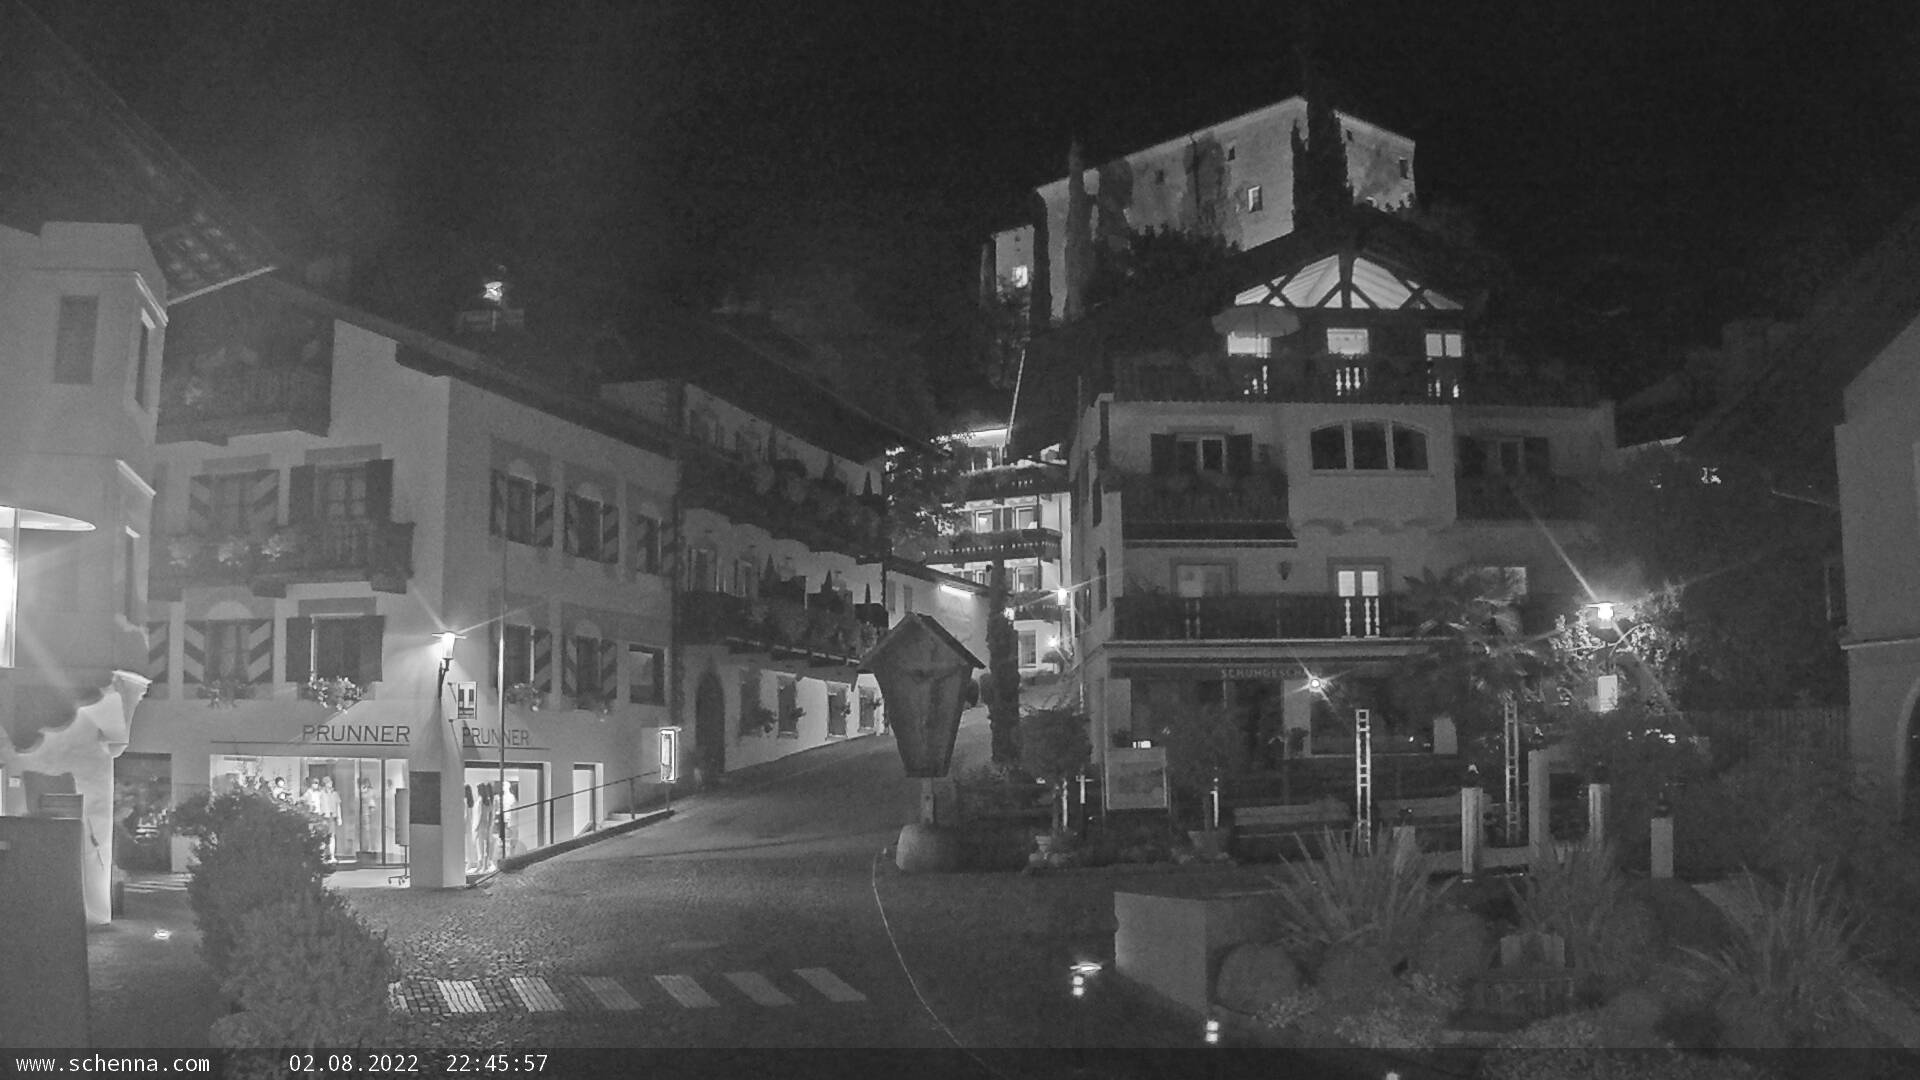 Center of Scena - Schlossweg with view on Castle Schenna